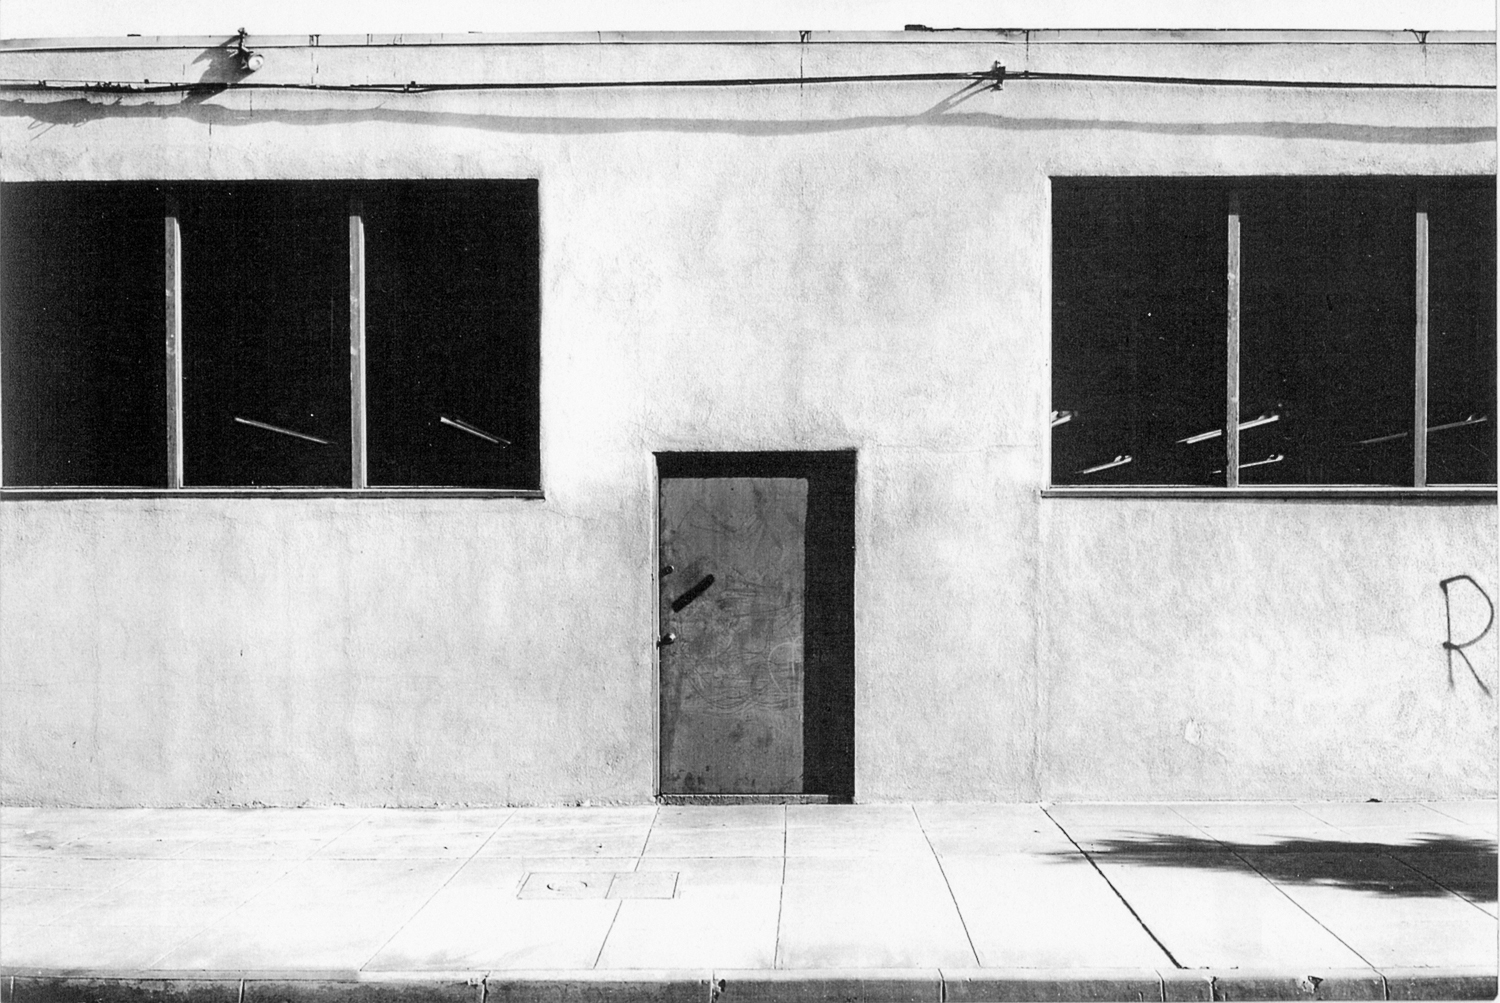 Lewis Baltz, Commercial Building, Pasadena, 1973. © Successors of Lewis Baltz. Used by permission. Courtesy of Gallery Luisotti, Santa Monica